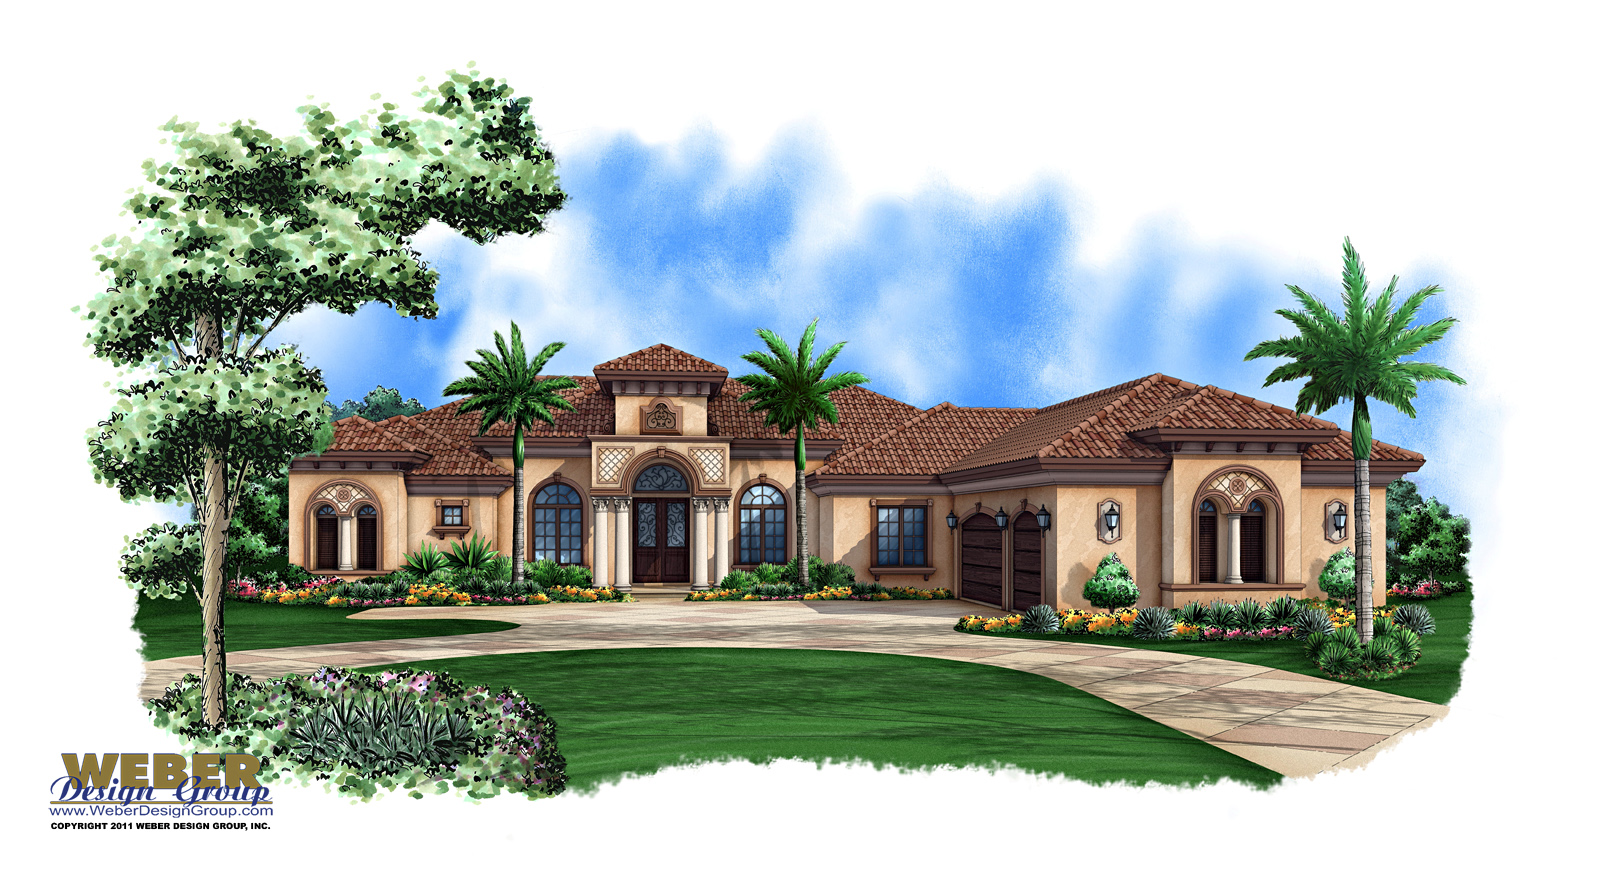 Mediterranean House Plan: 1 Story Mediterranean Luxury Home Plan